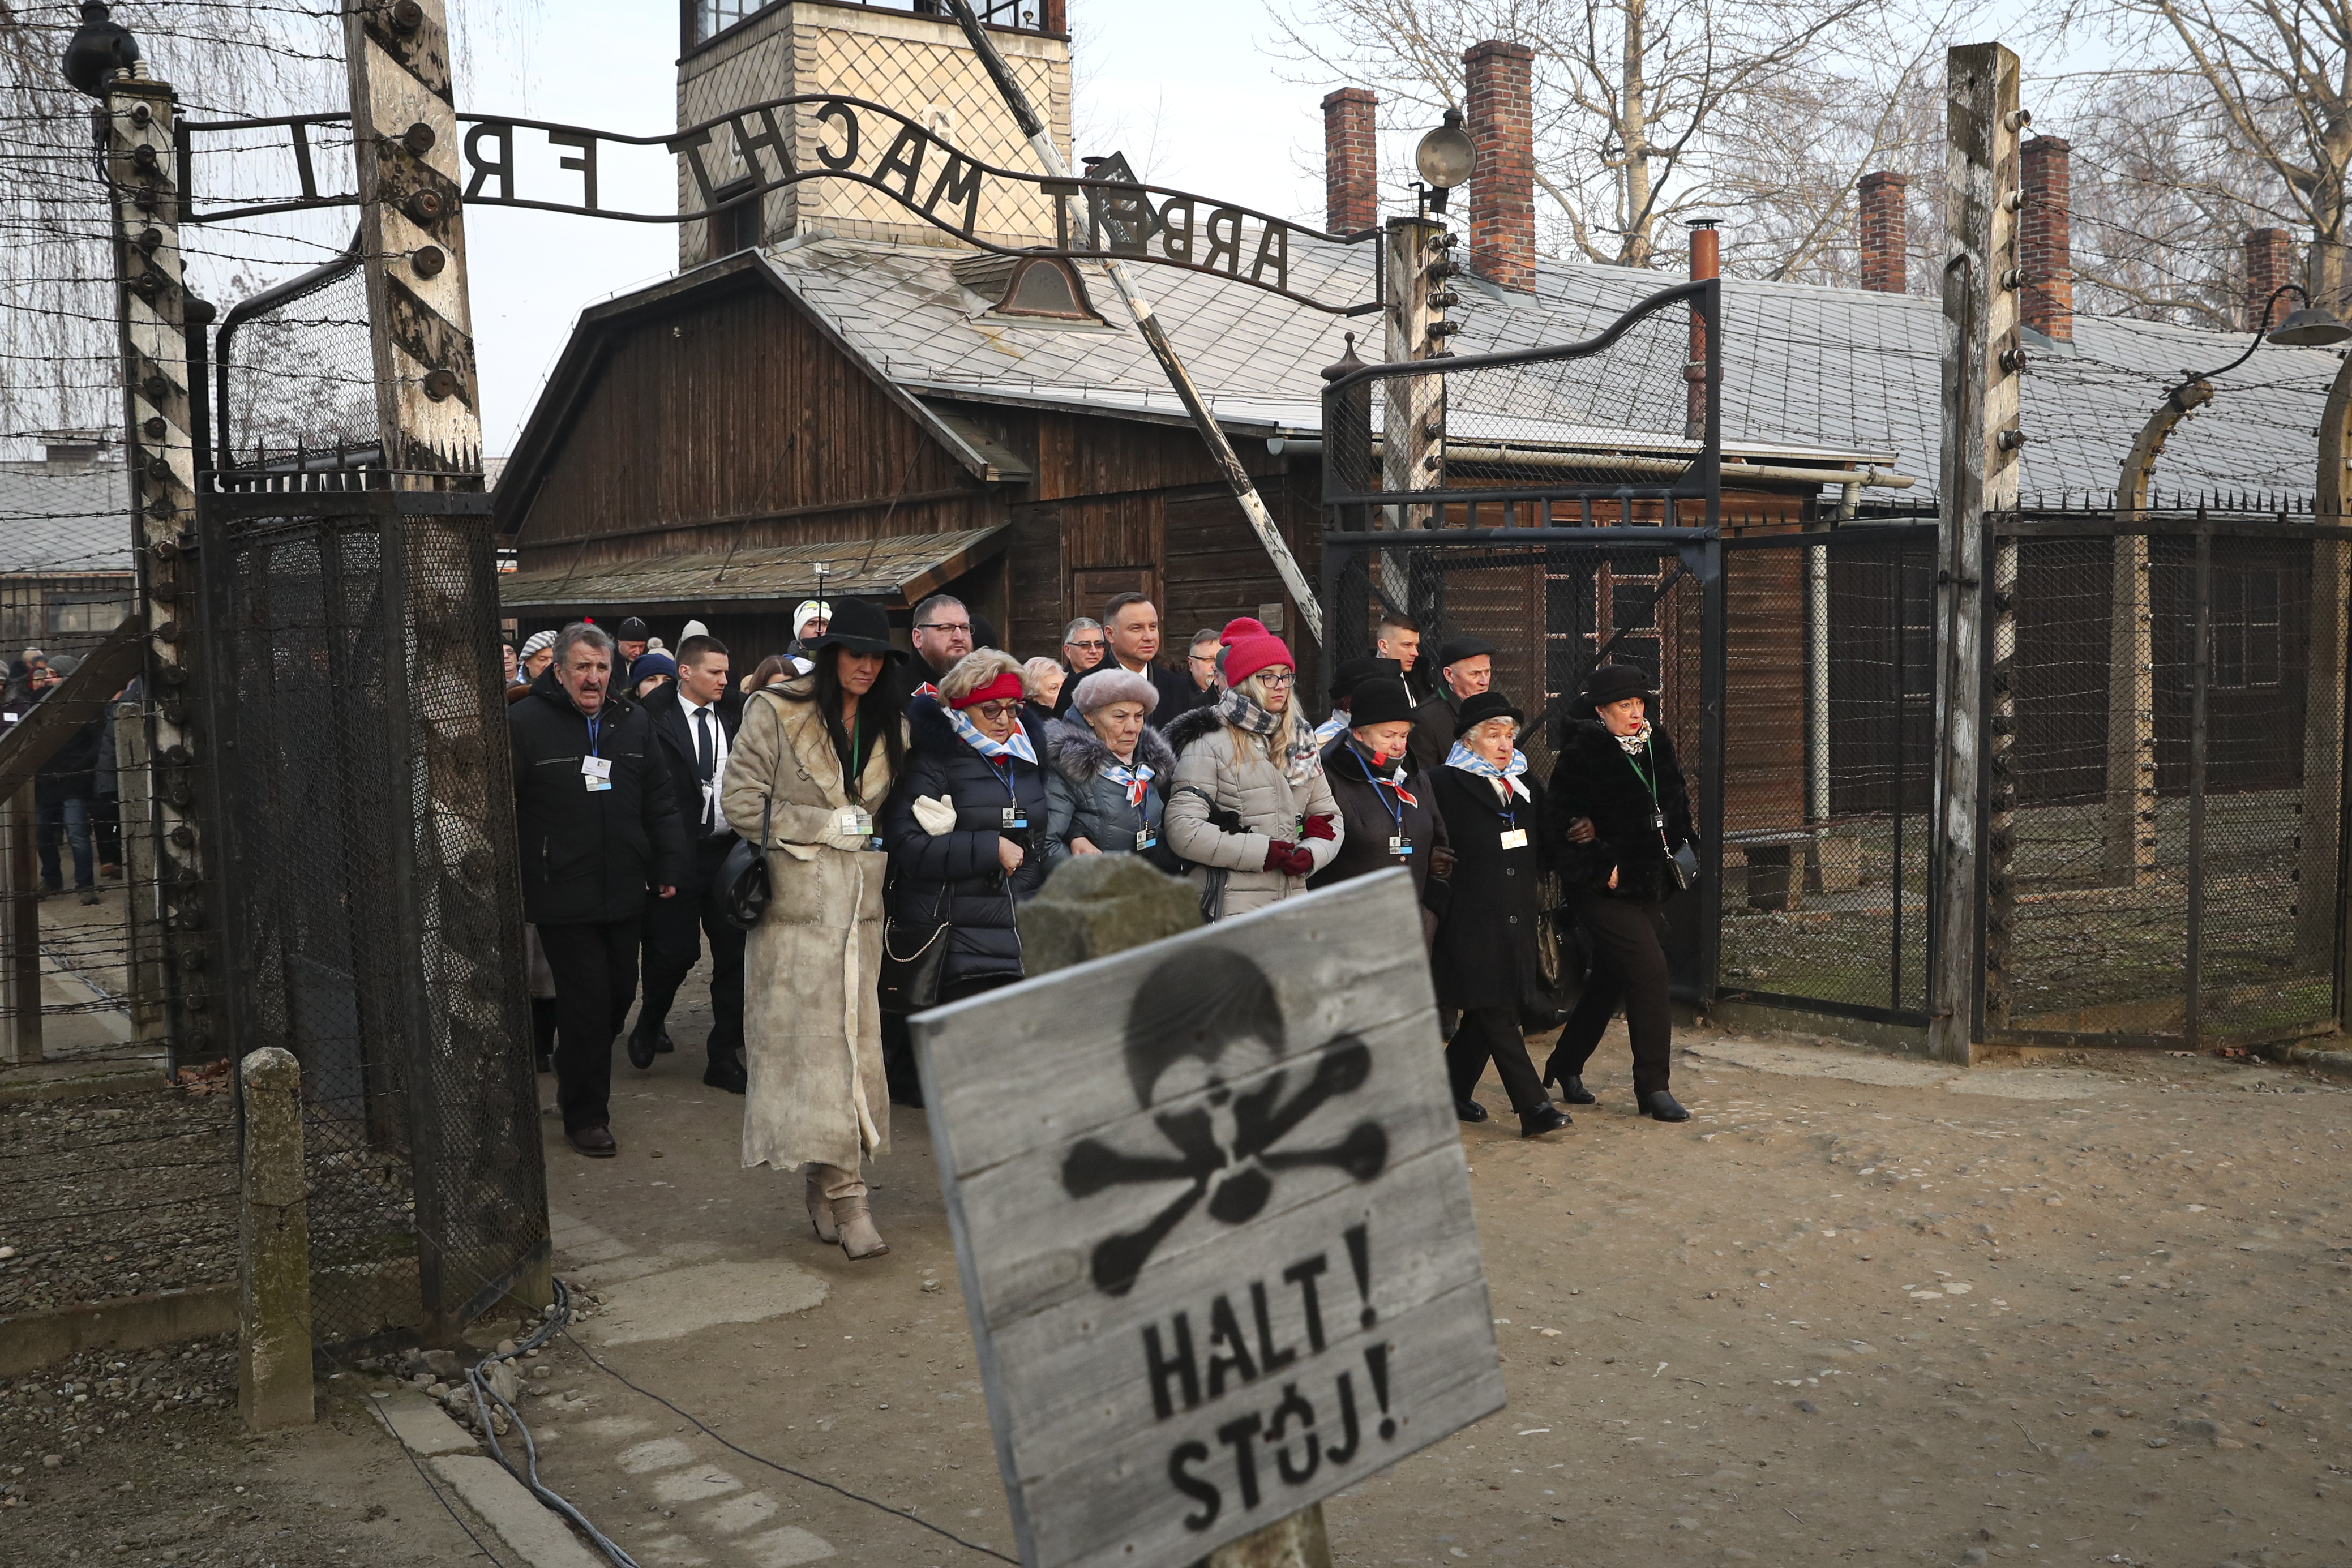 75 years after Auschwitz liberation, survivors recall the horror